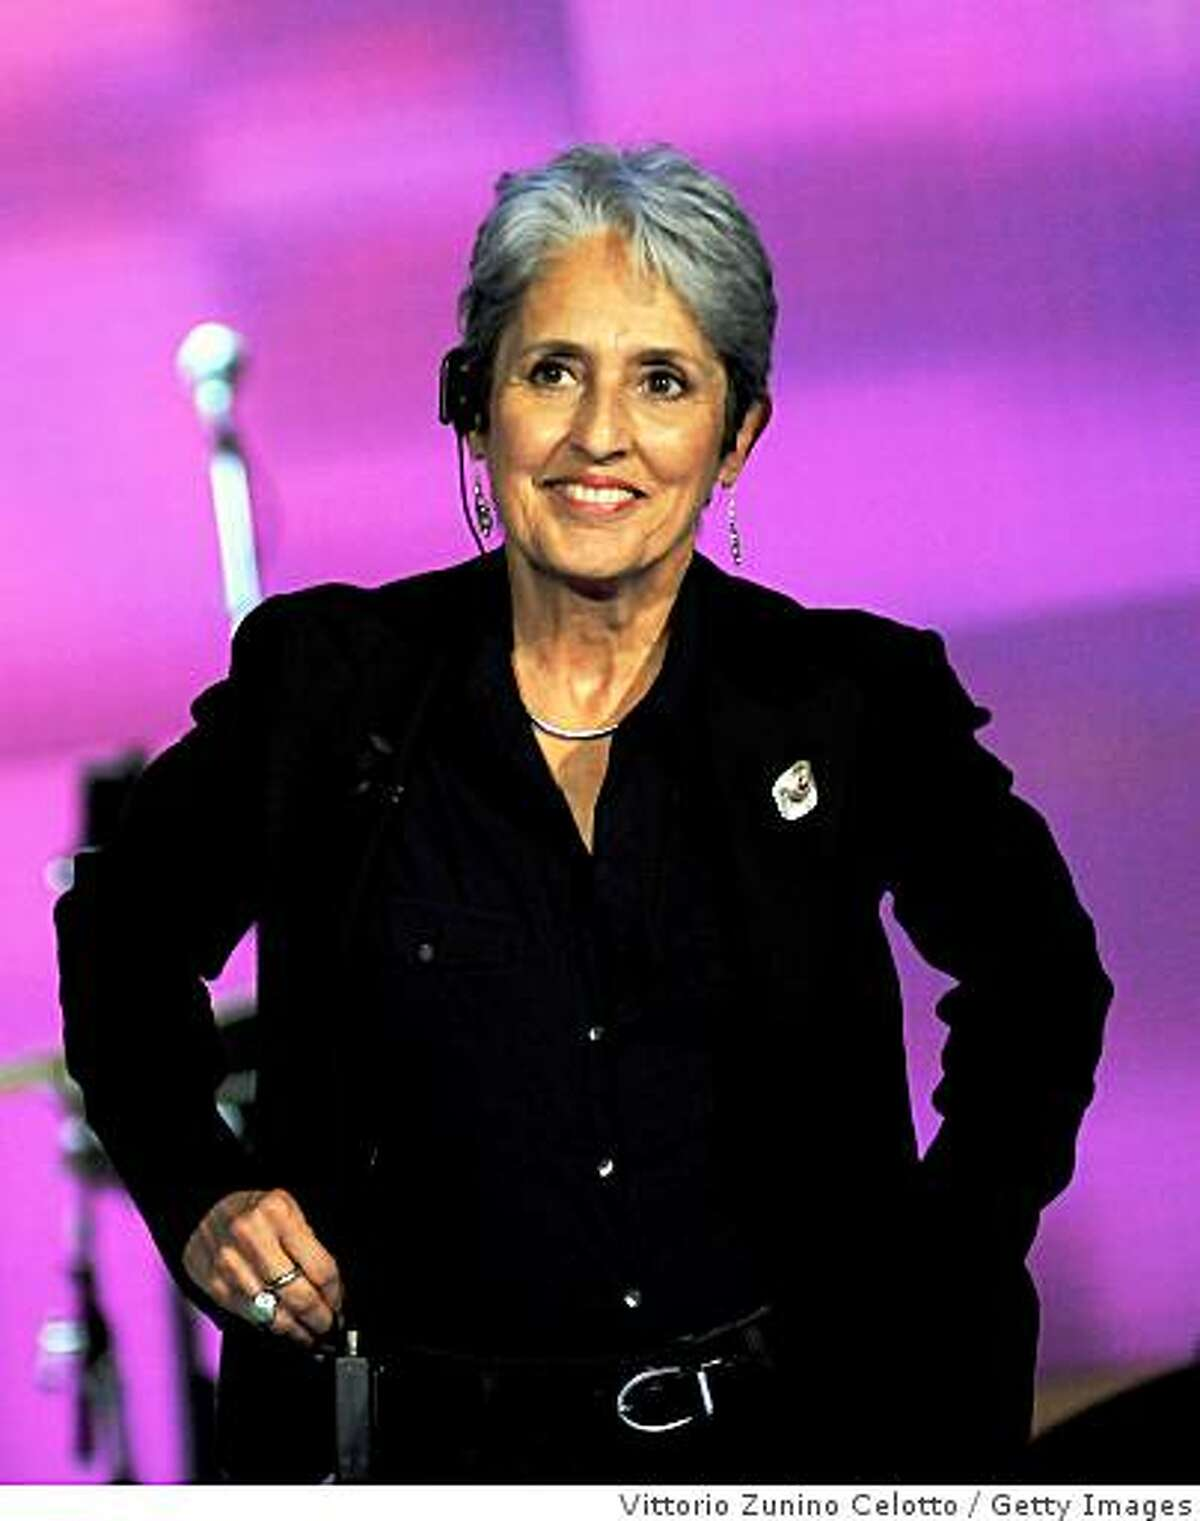 MILAN, ITALY - OCTOBER 11: Singer Joan Baez attends Che Tempo Che Fa Television Show held at RAI Studios on October 11, 2008 in Milan, Italy.